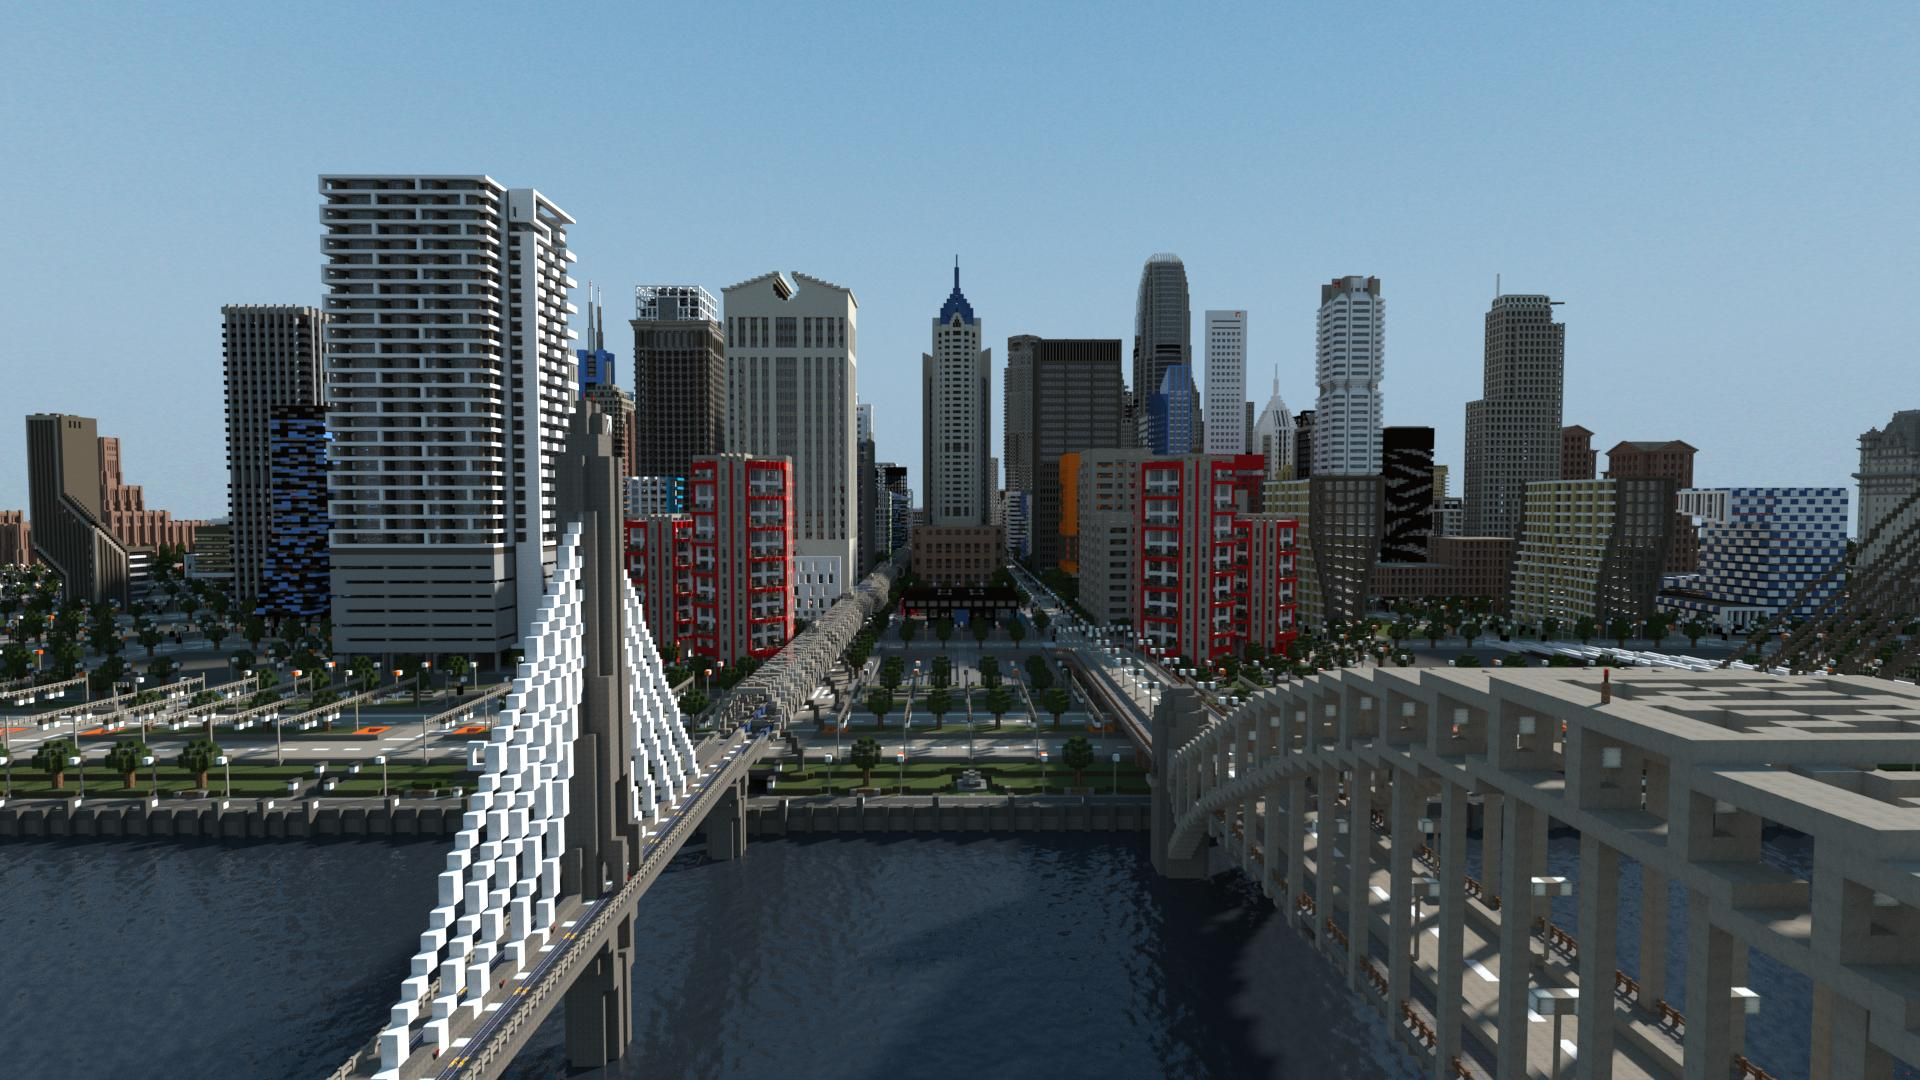 Overview modern city modpack modpacks projects minecraft minecraft curseforge gumiabroncs Choice Image